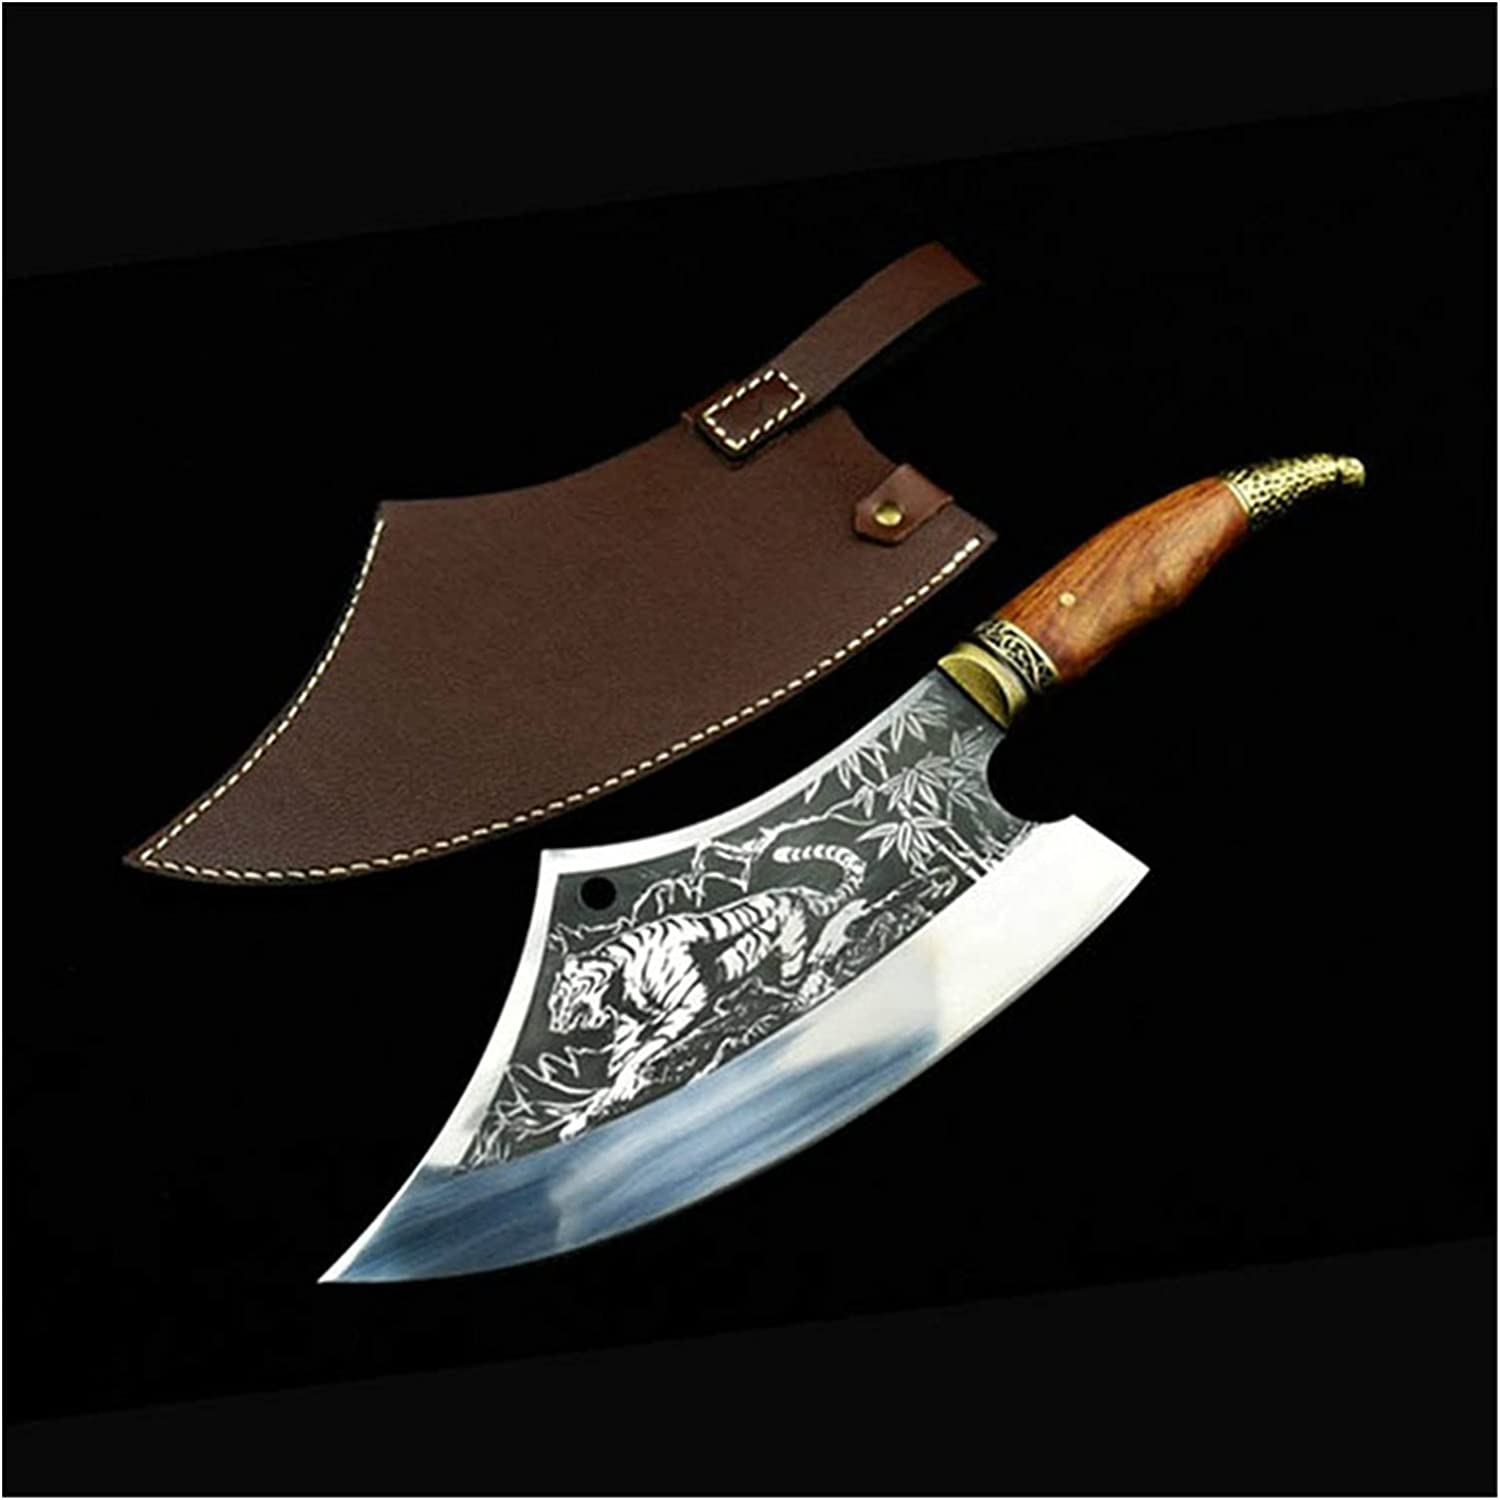 shipfree Meat Cleaver Kitchen Knife Forge Hand Denver Mall Chef Chinese